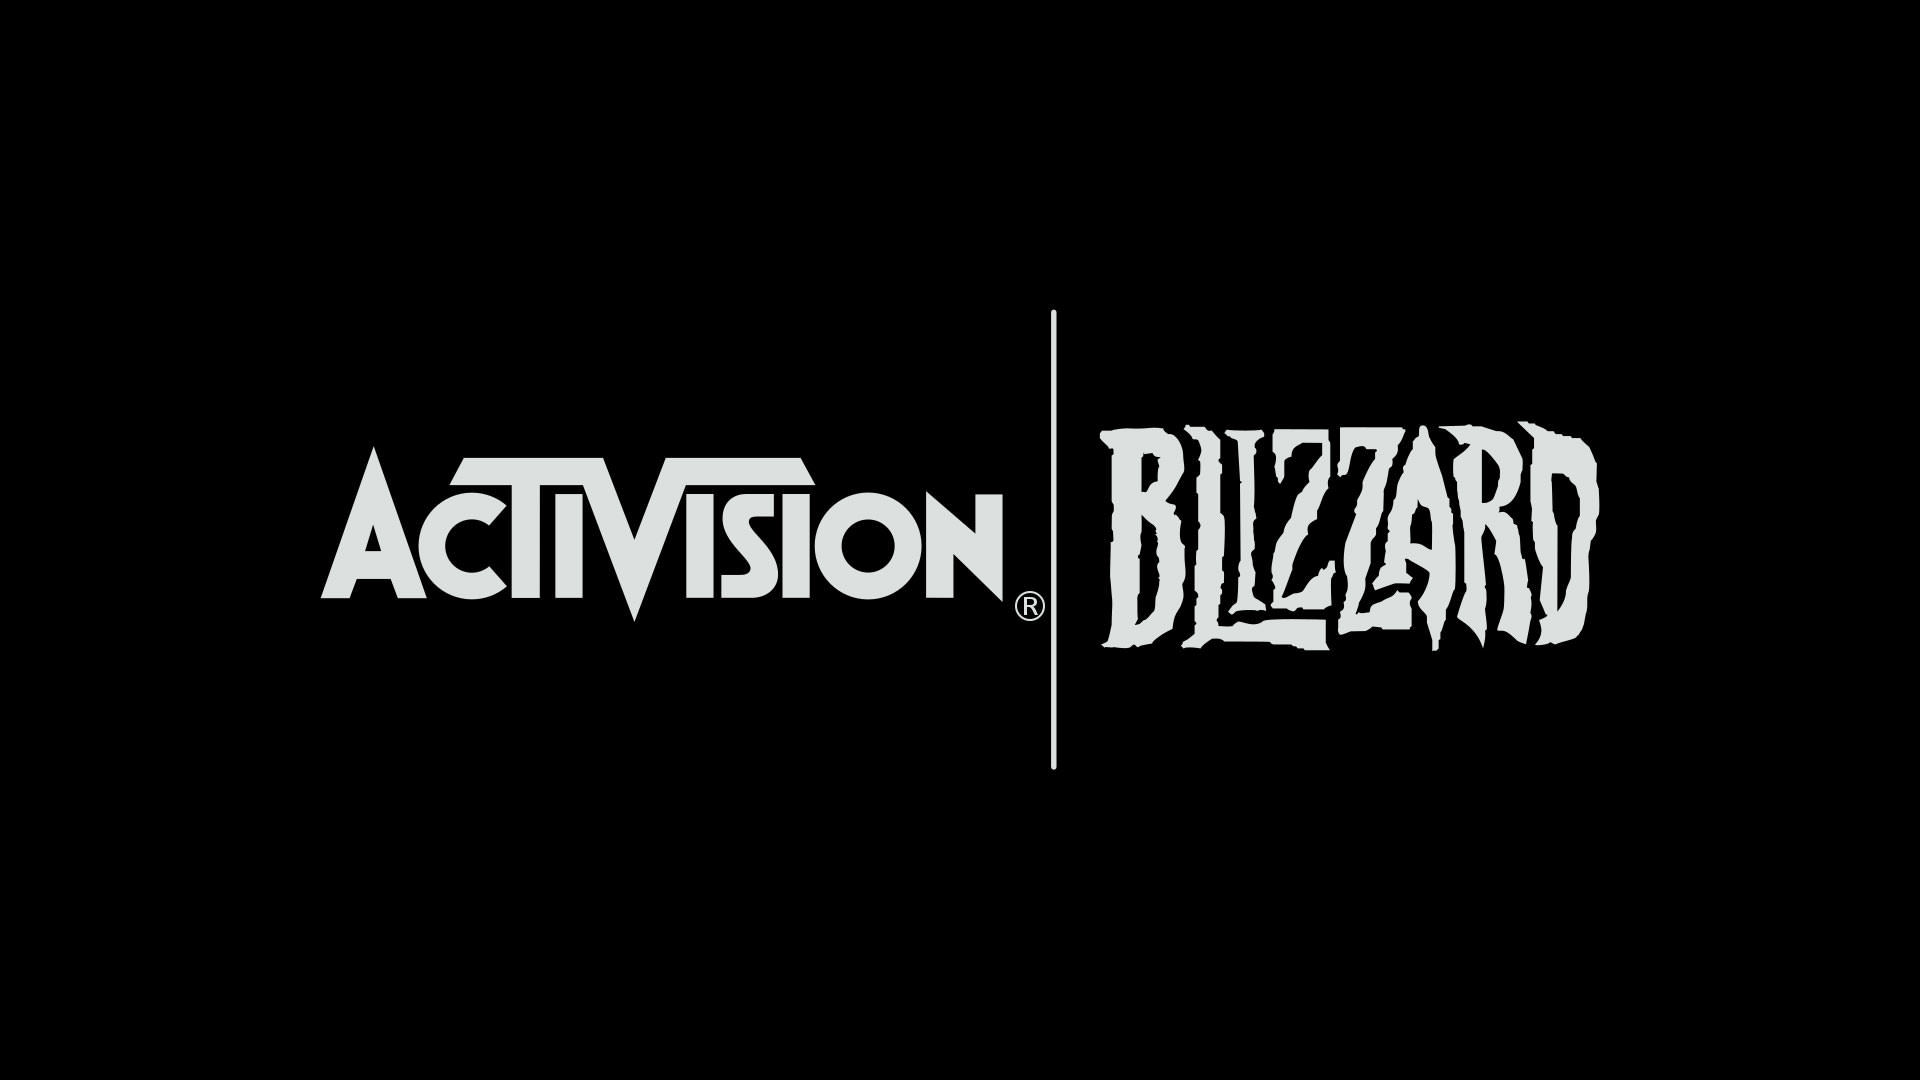 Activision, Blizzard